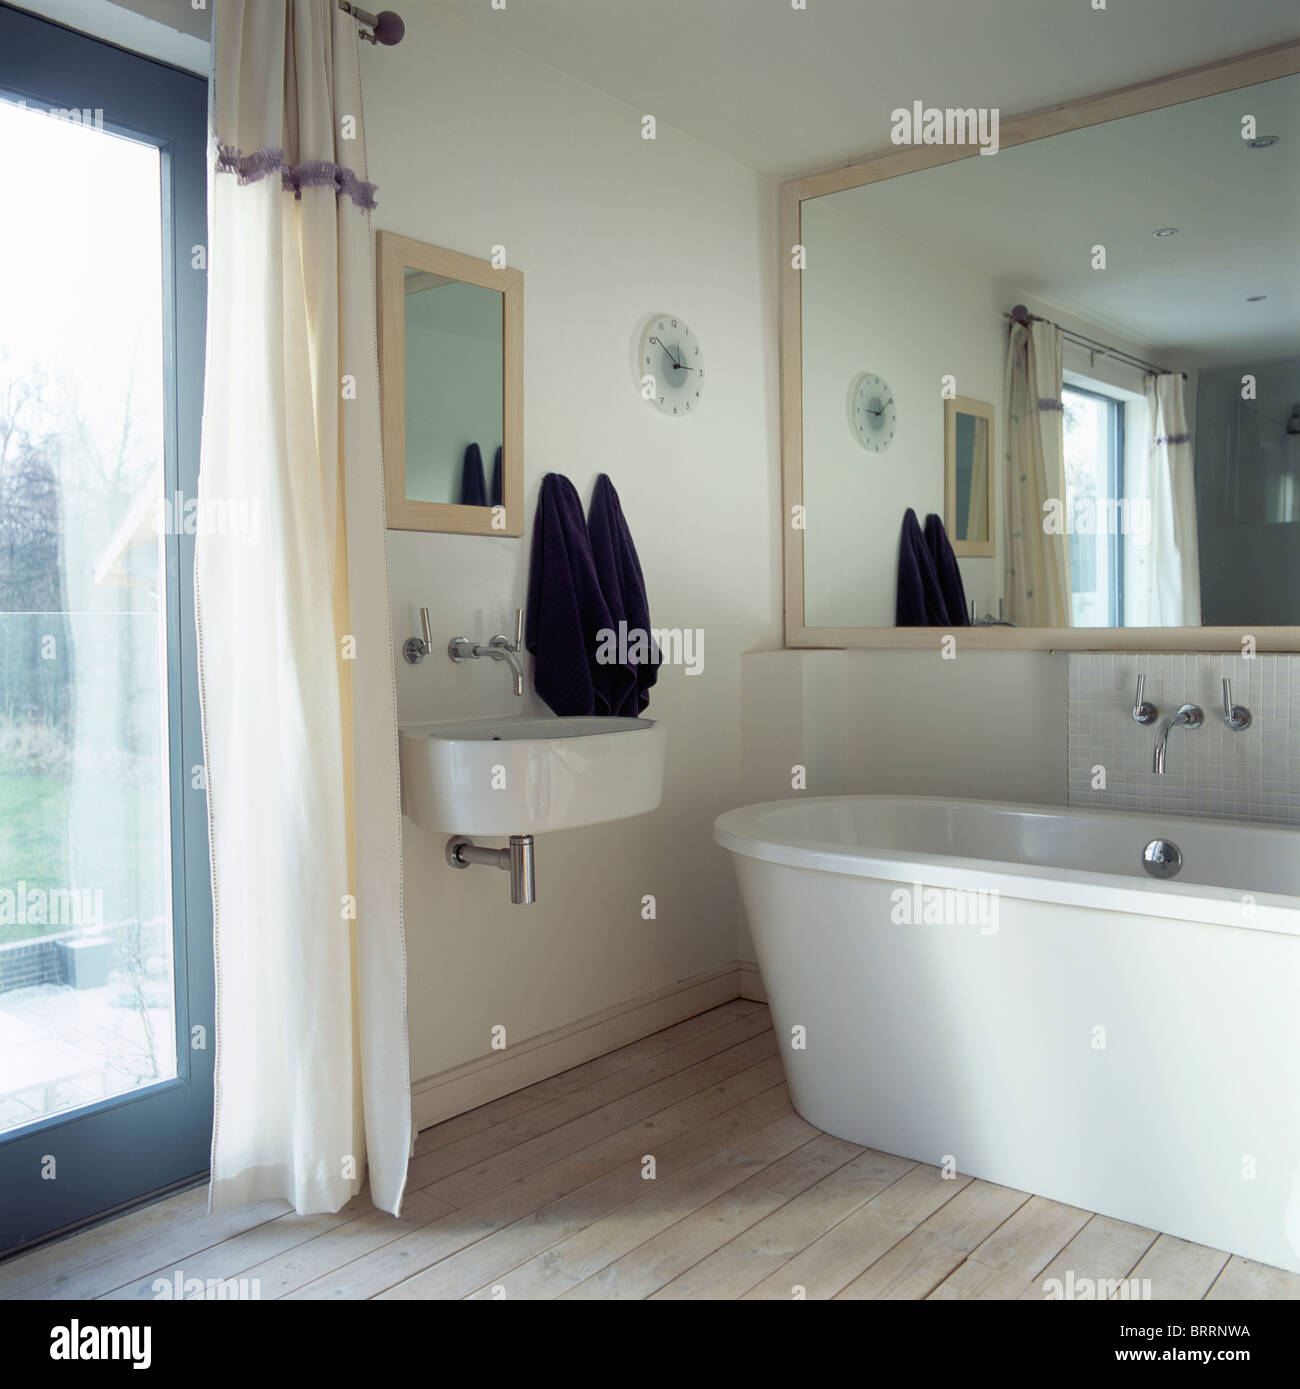 Superieur Large Mirror Above Modern Bath In Small Modern Bathroom With Wall Mounted  Basin Beside Glass Door With White Curtain